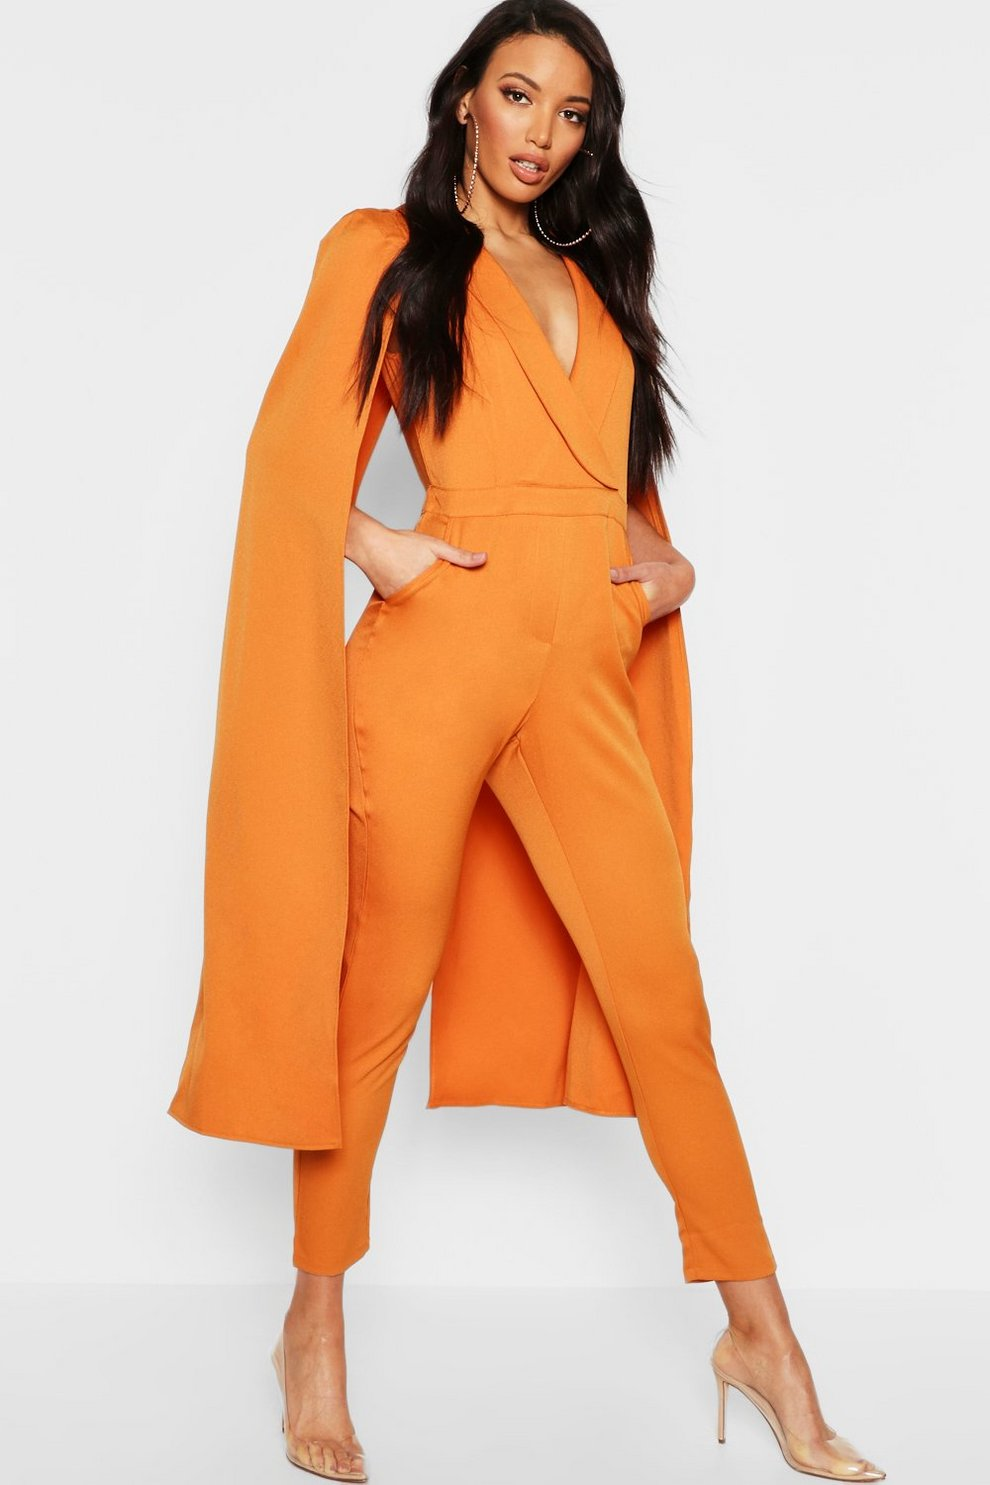 861896a4b5cf Cape Woven Tailored Jumpsuit. Cape Woven Tailored Jumpsuit. Hover to zoom